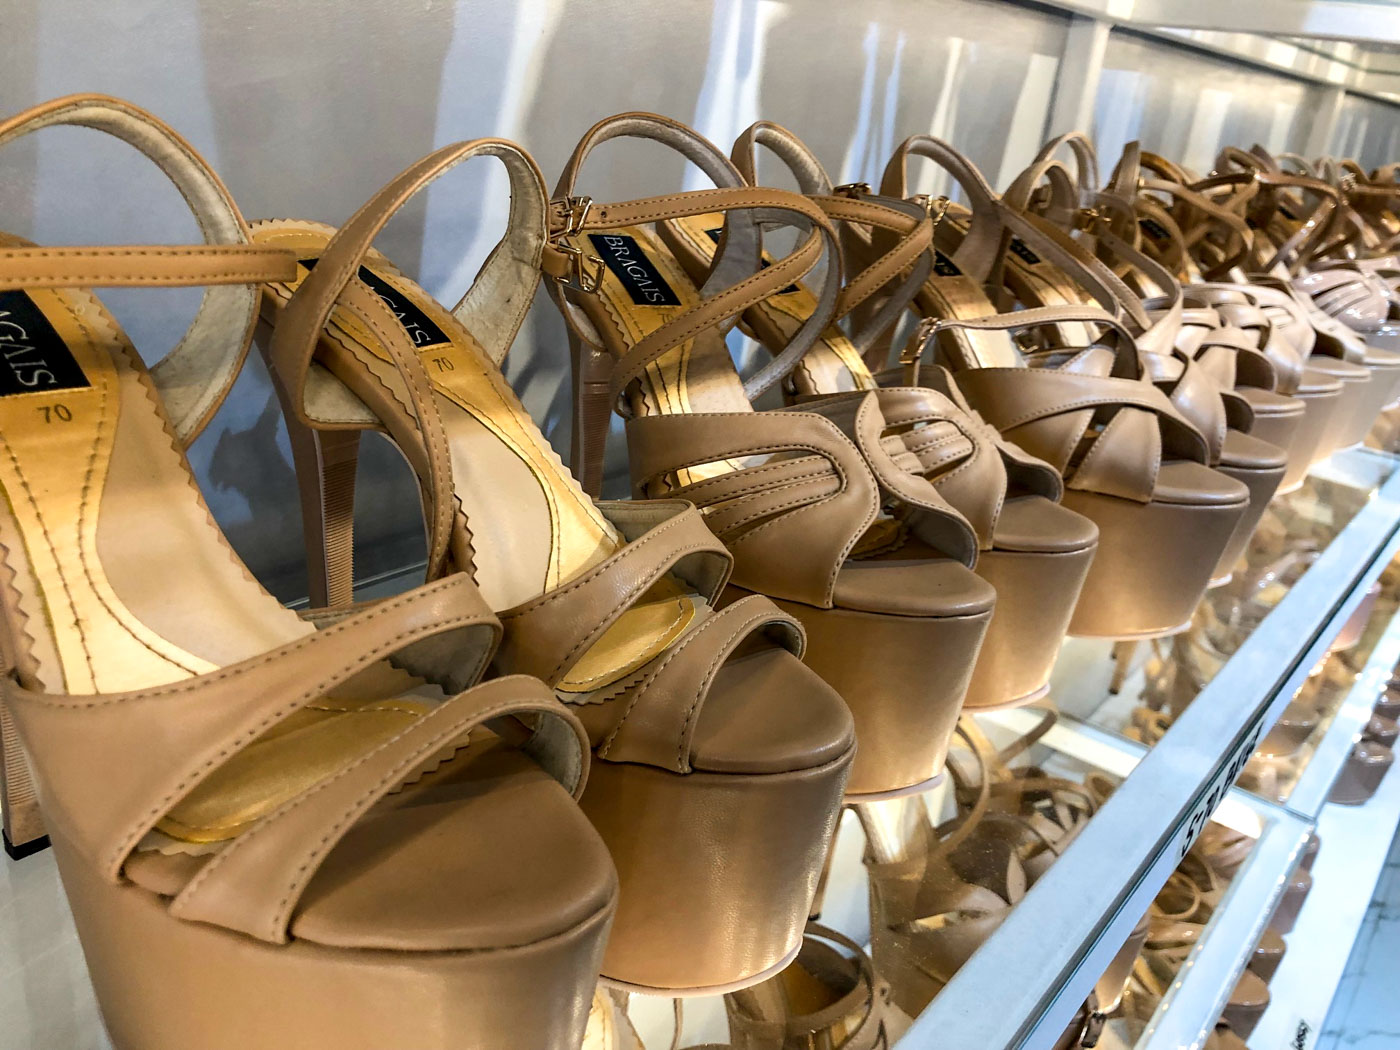 MORE SHOES. Jojo's line of pageant shoes in his store in Quezon City. Photo by Voltaire Tayag/Rappler